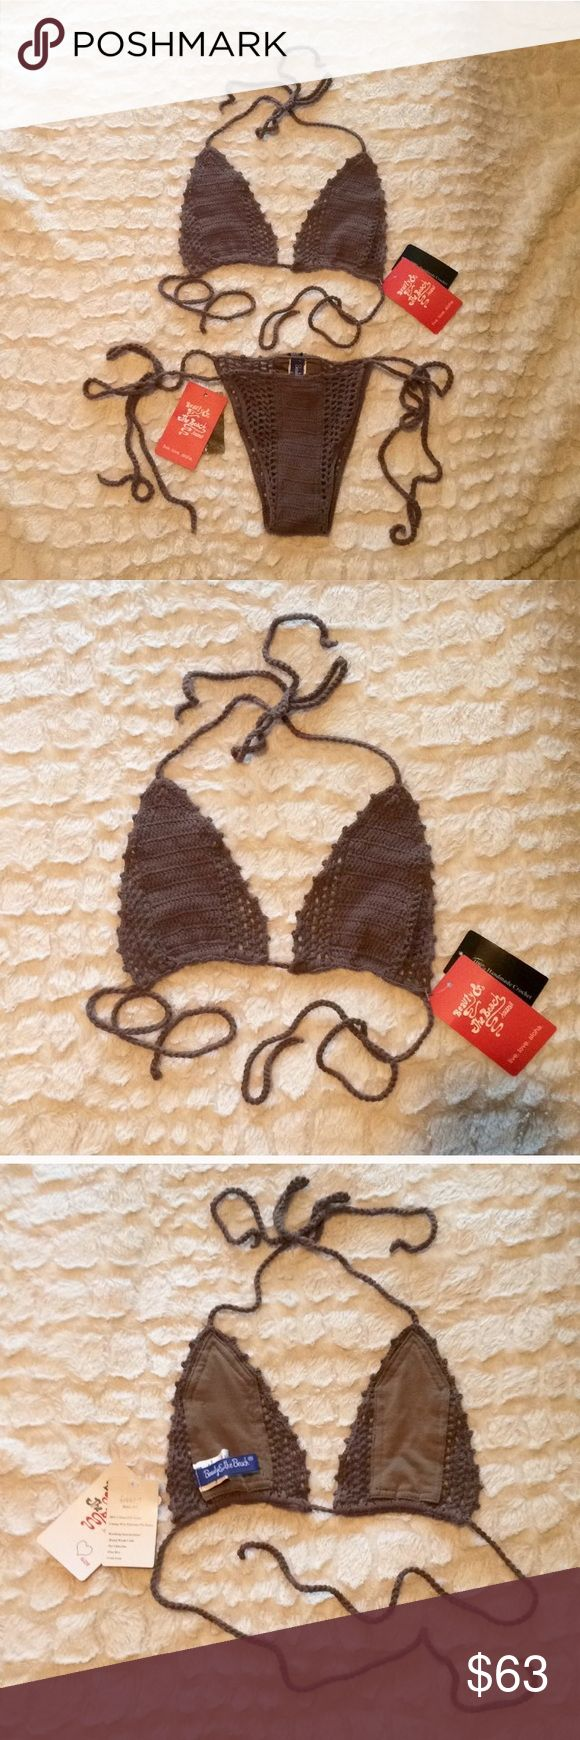 NWT Beauty & The Beach Crochet Bikini *SET* Beauty & The Beach Hawaii NWT string bikini is a sexy, itsy bitsy 100% handmade crochet STUNNER; perfect for tanning this coming summer!☀️👙  As seen in 2015's Sports Illustrated Swimsuit Edition, this soft cocoa brown version is silky smooth on all of your most sensitive lady parts.🙈  **Women's size (1) Medium Top and (1) Small Bottom in a Brazilian cut; covers ONLY what's necessary. Comment to purchase separately**  I'm always open to fair…